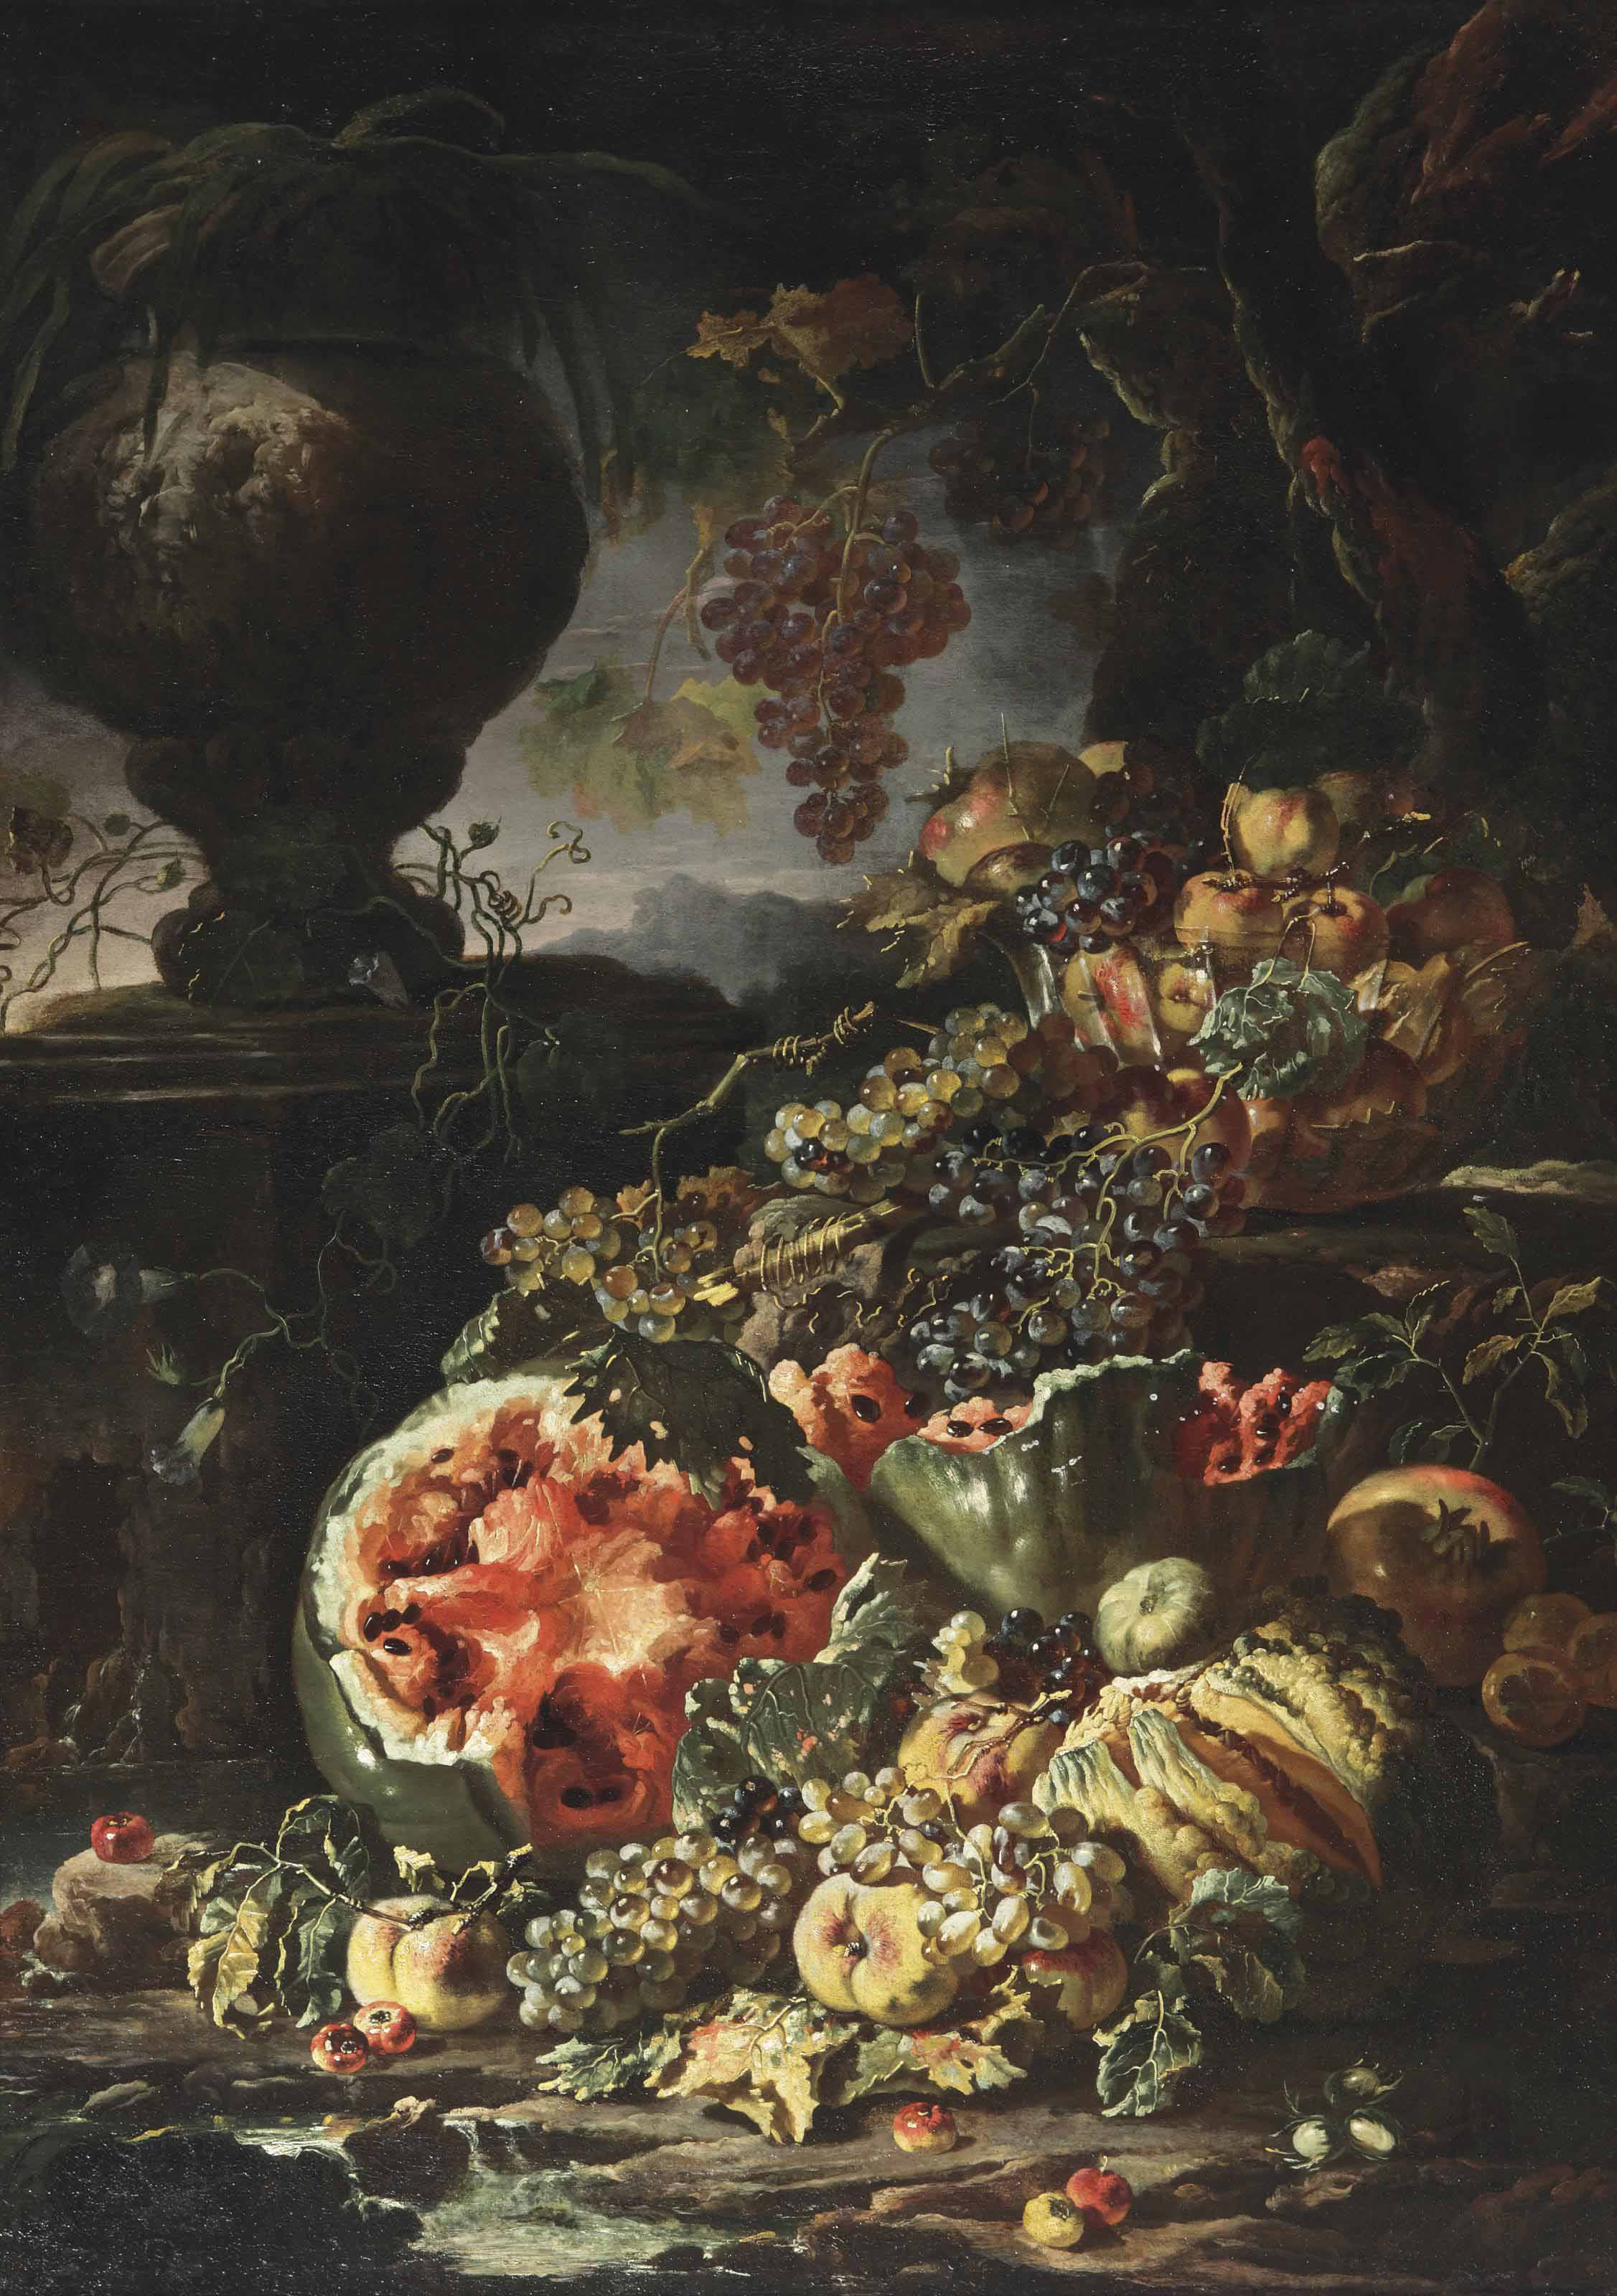 Watermelons, apples, grapes and other fruit, a glass bowl filled with apples and a pomegranate, a stone garden vase, all set in a landscape by a stream